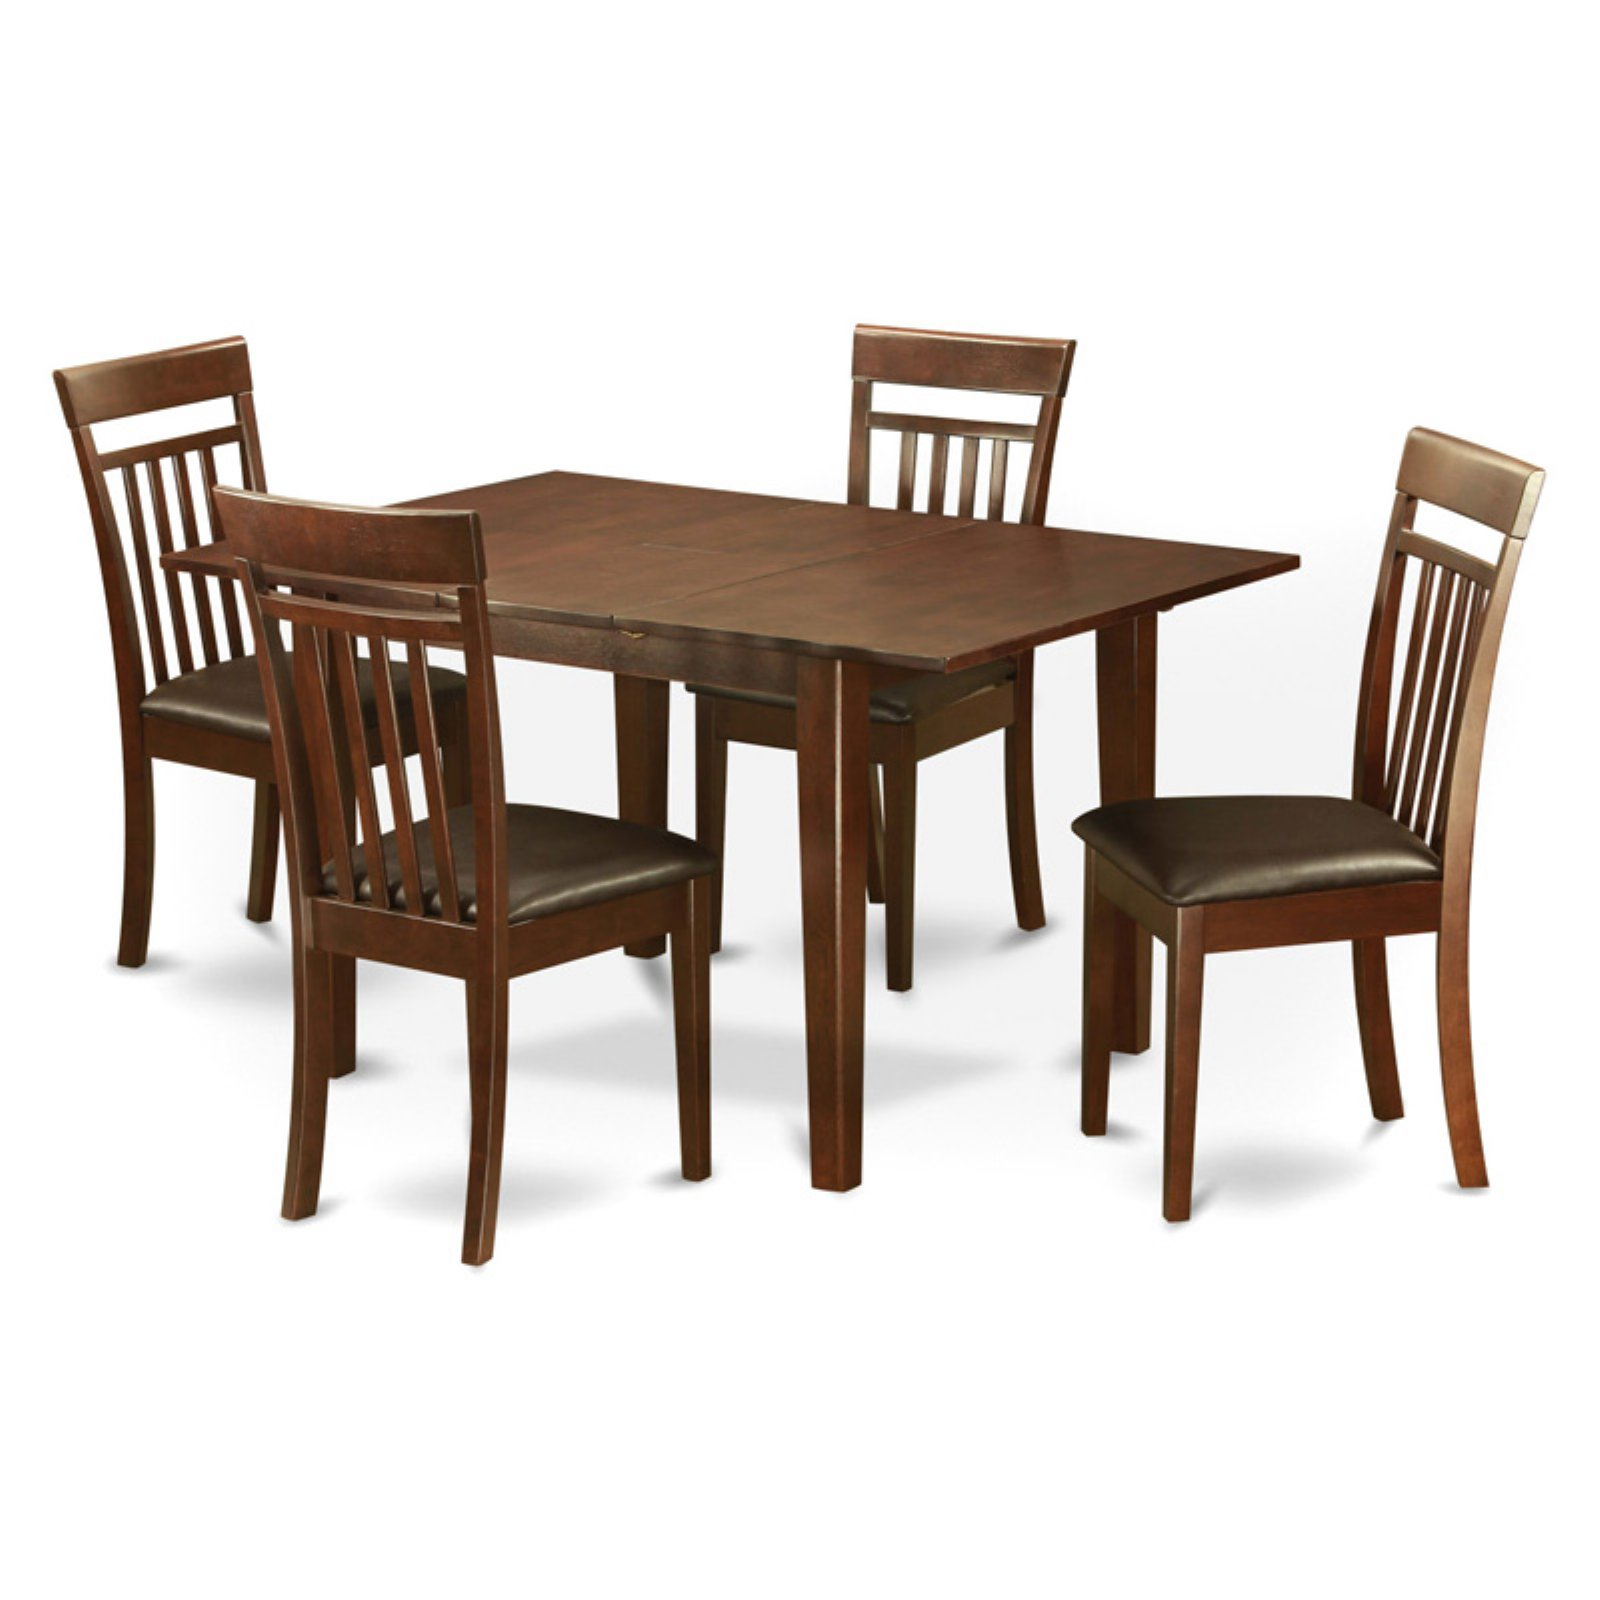 East West Furniture Milan 5 Piece Rectangular Dining Table Set with Capri Chairs